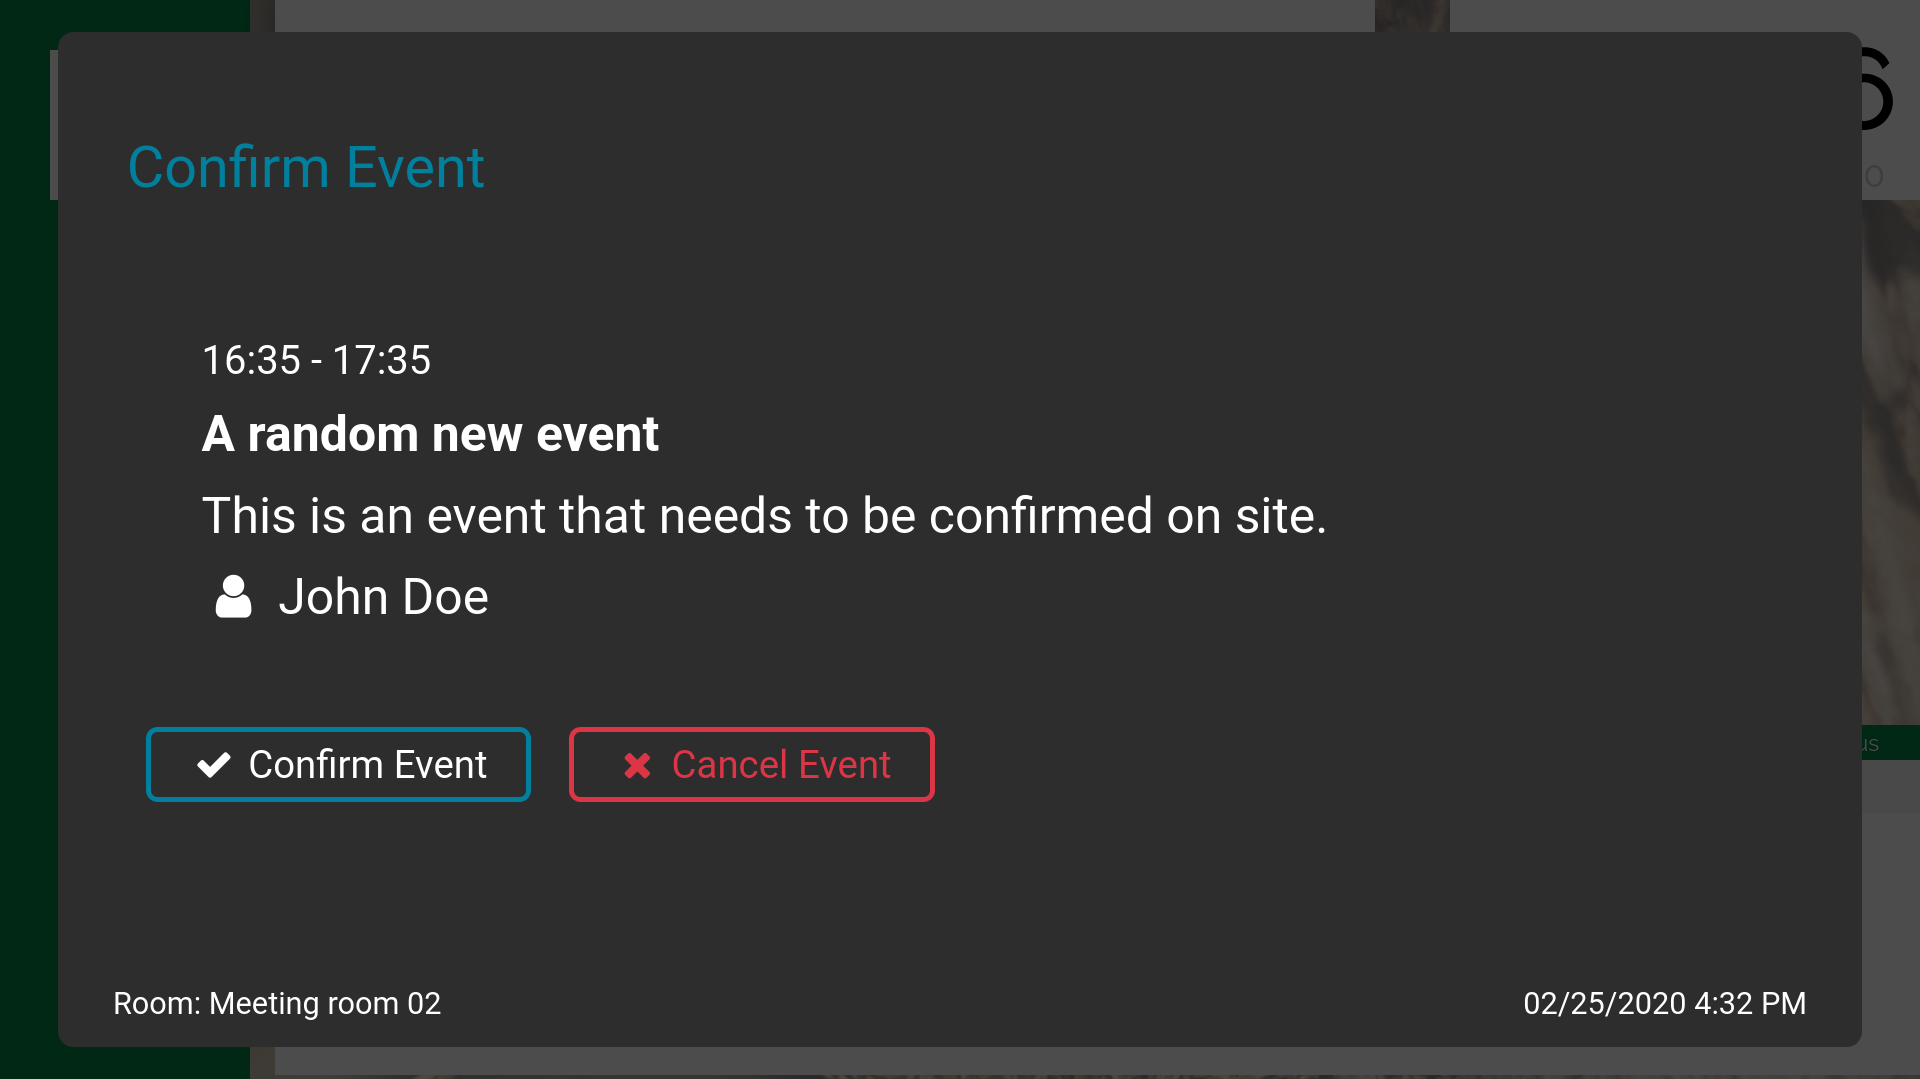 Picture of a confirm event dialog shown on a doorsign screen